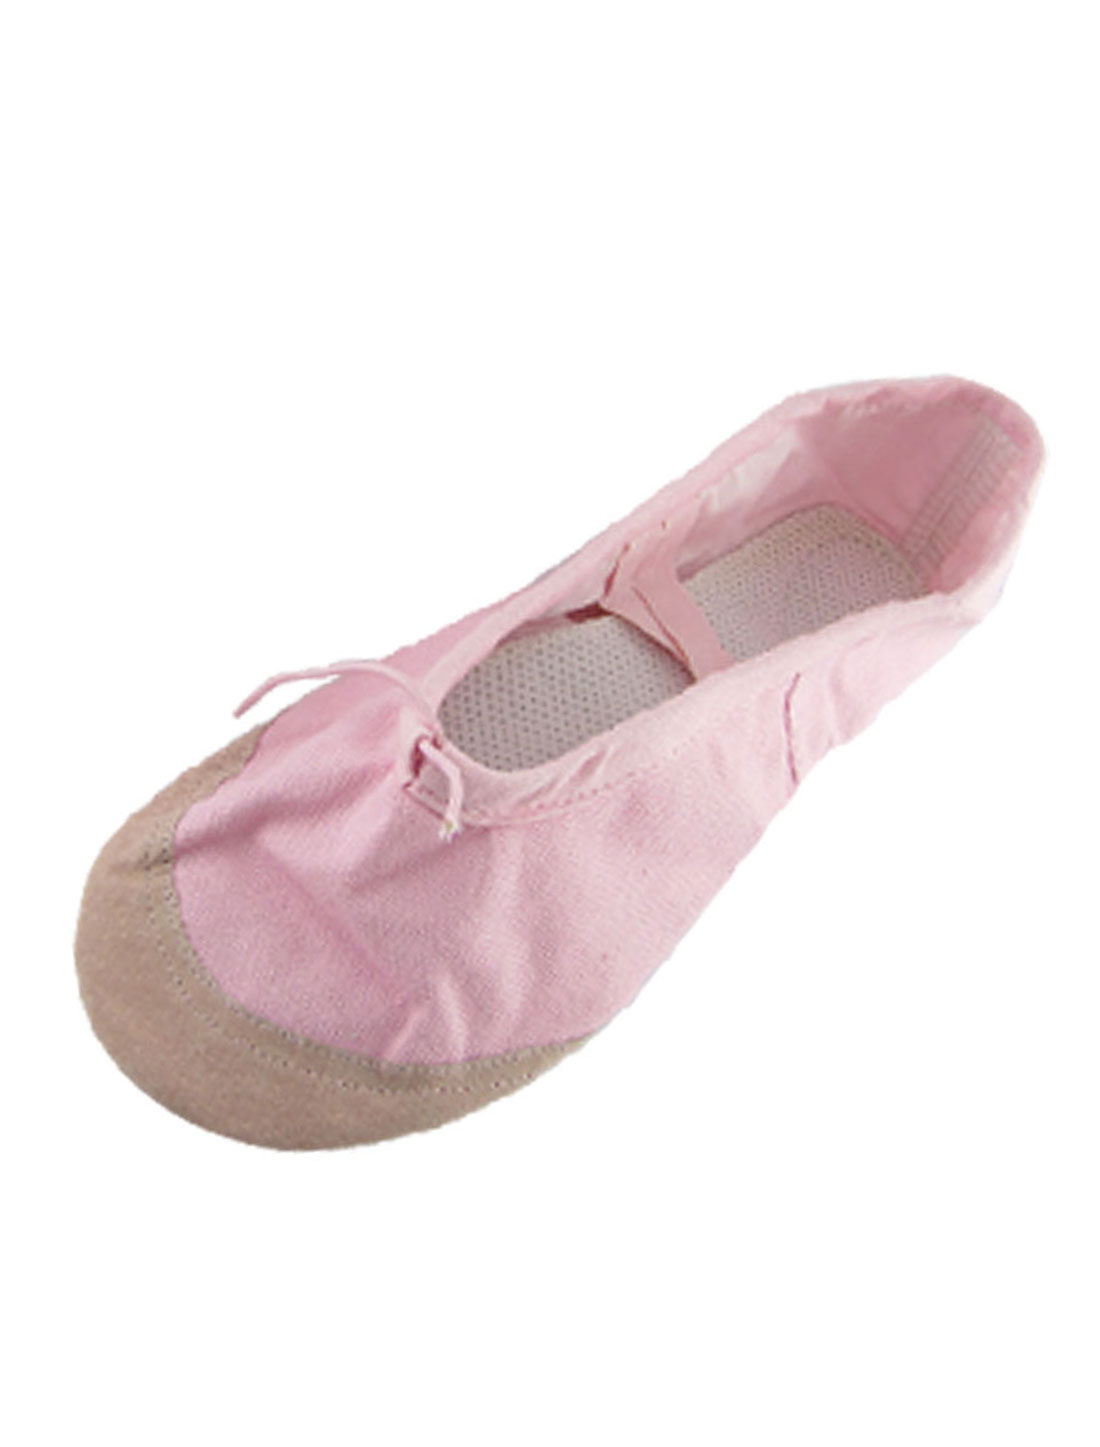 Girls-US-Sz-13-5-Elastic-Band-Pink-Ballet-Dancig-Flat-Shoes